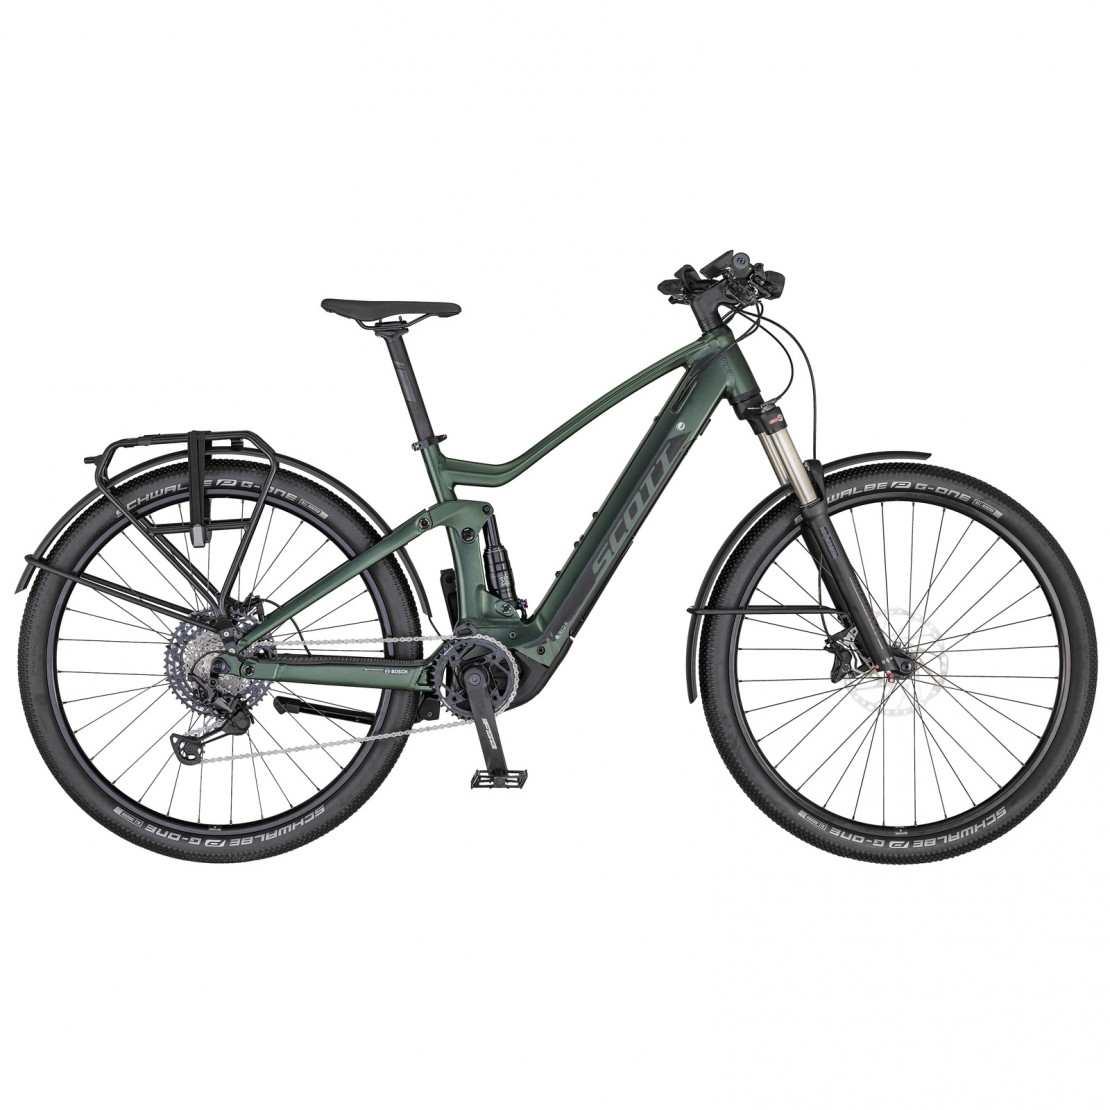 Scott Axis eRide Evo 2020 - Electric Bike